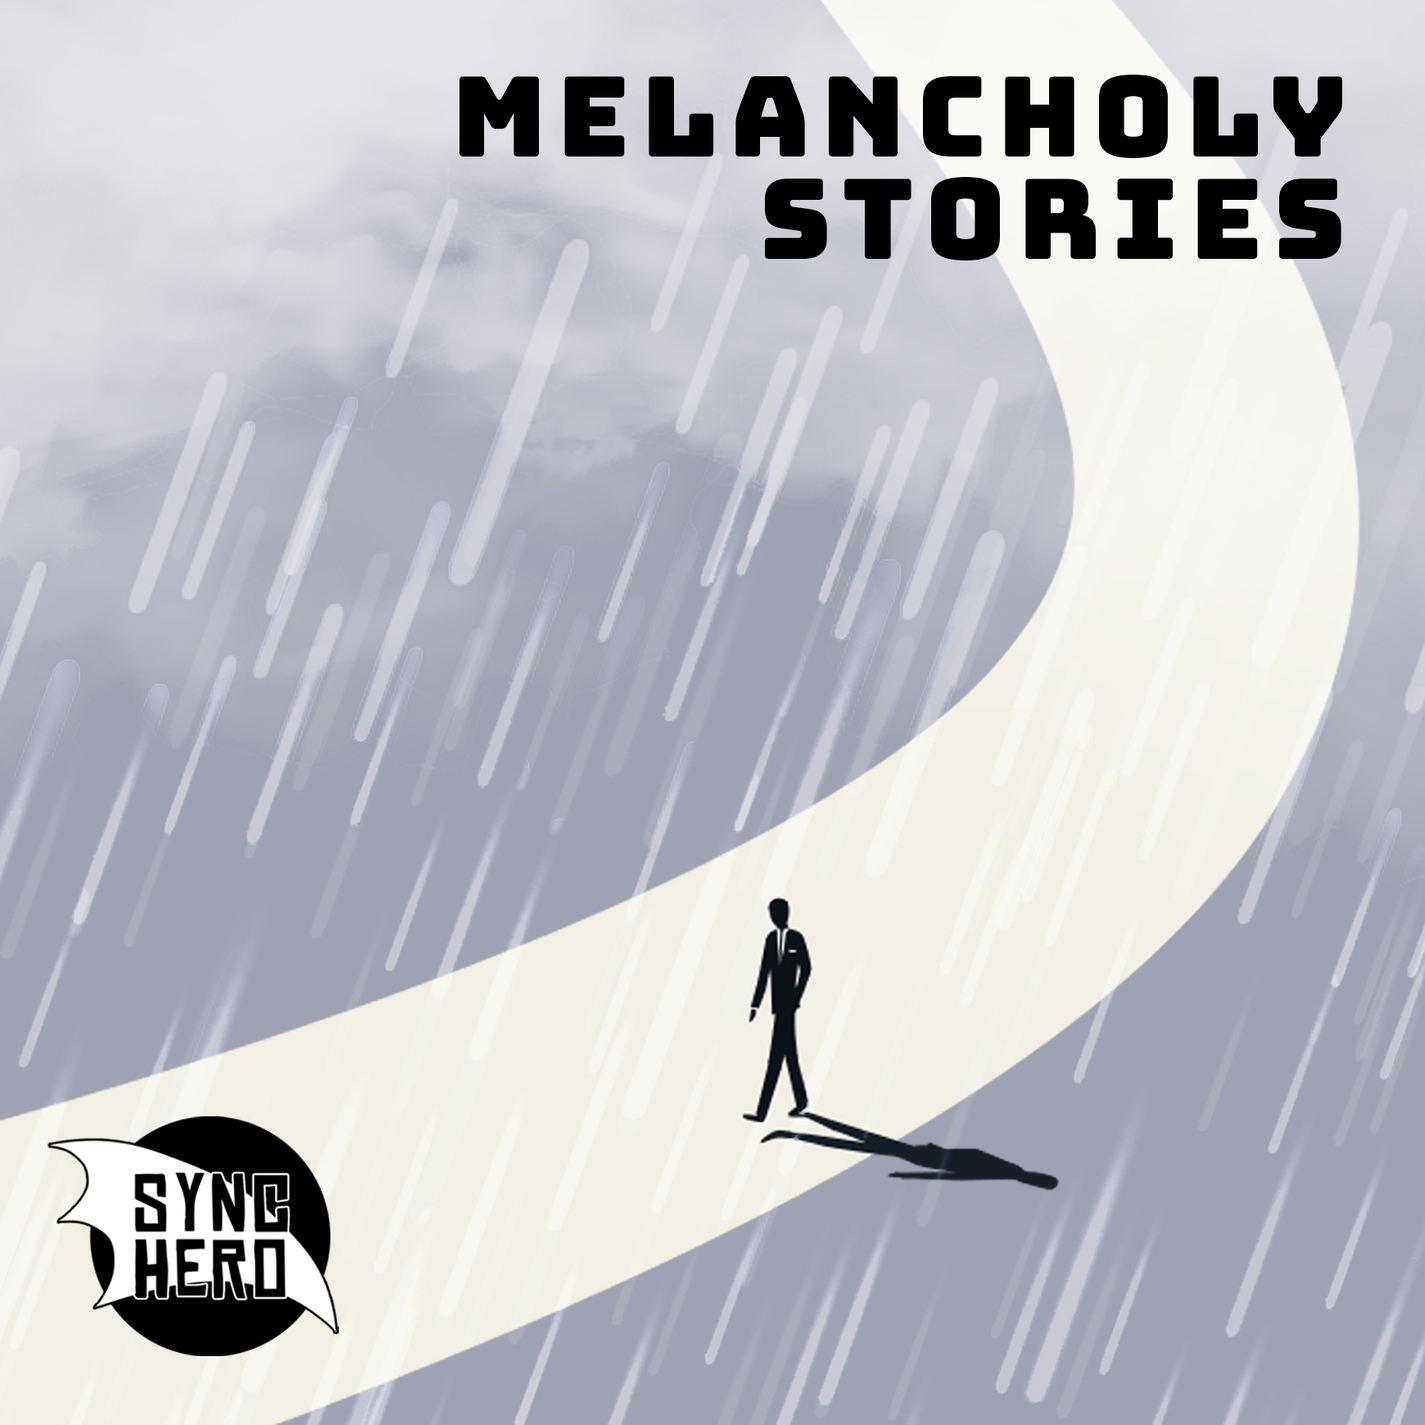 Melancholy Stories